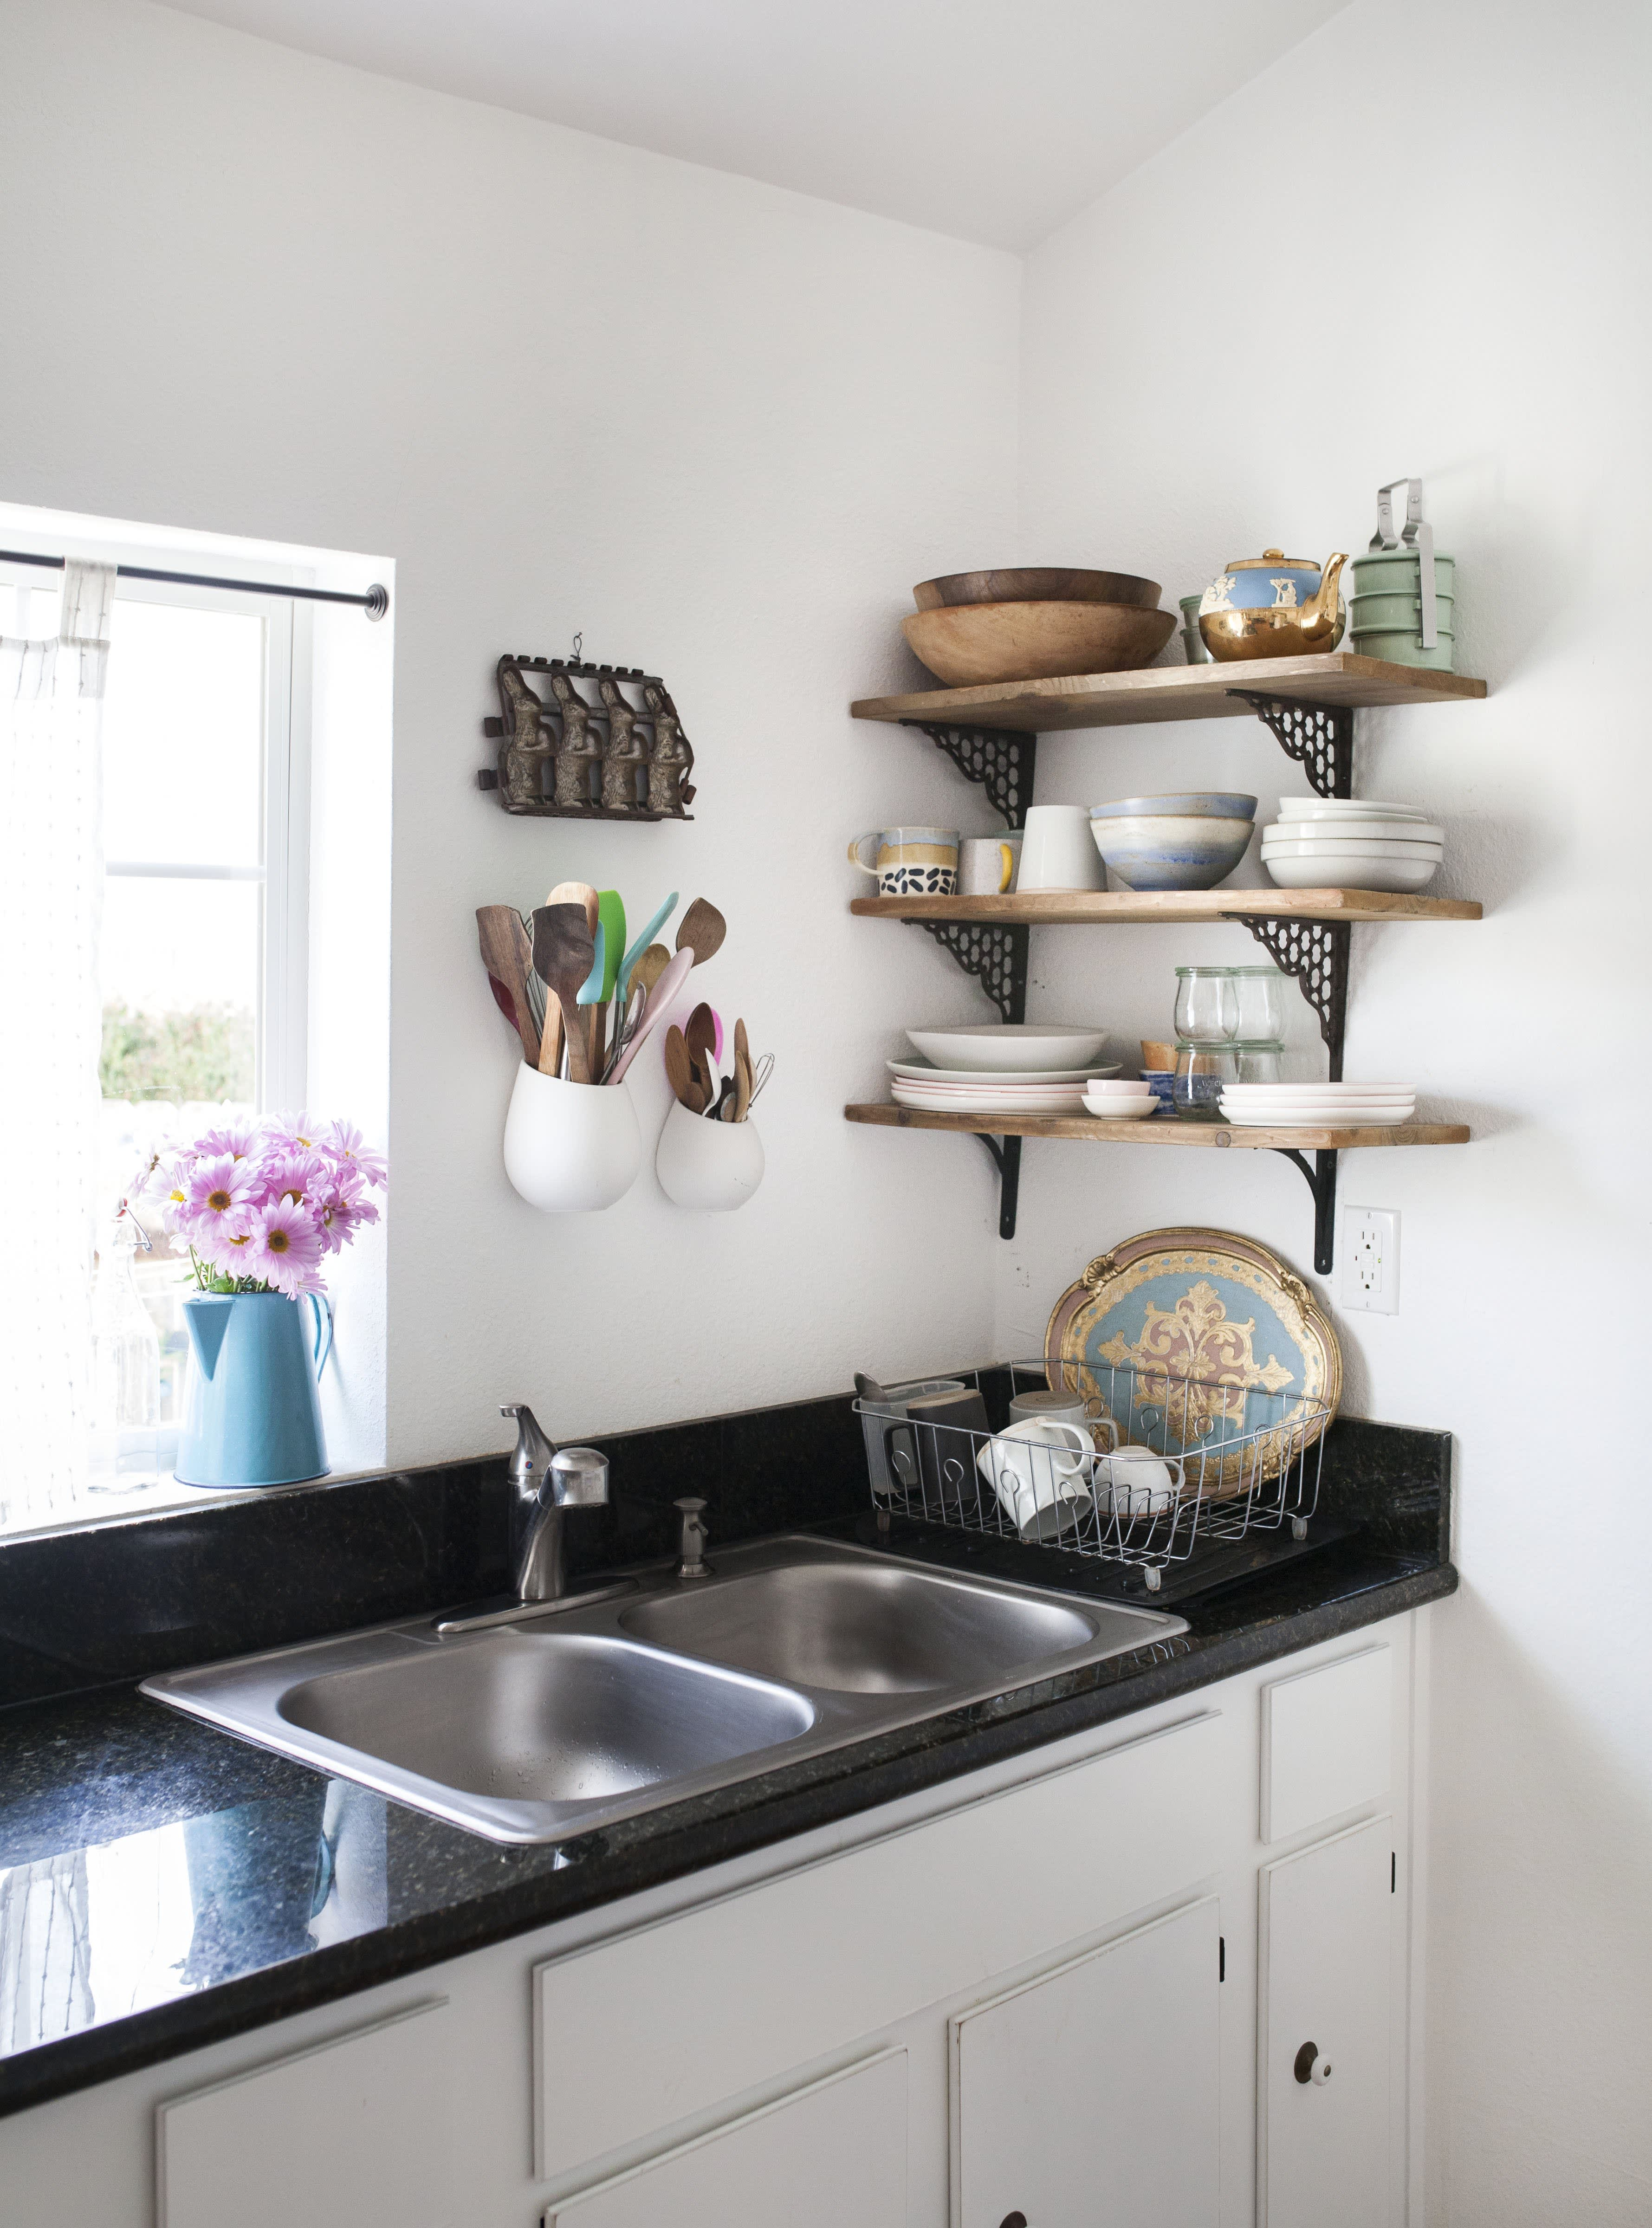 10 Real-Life Kitchens to Inspire Yours: gallery image 4